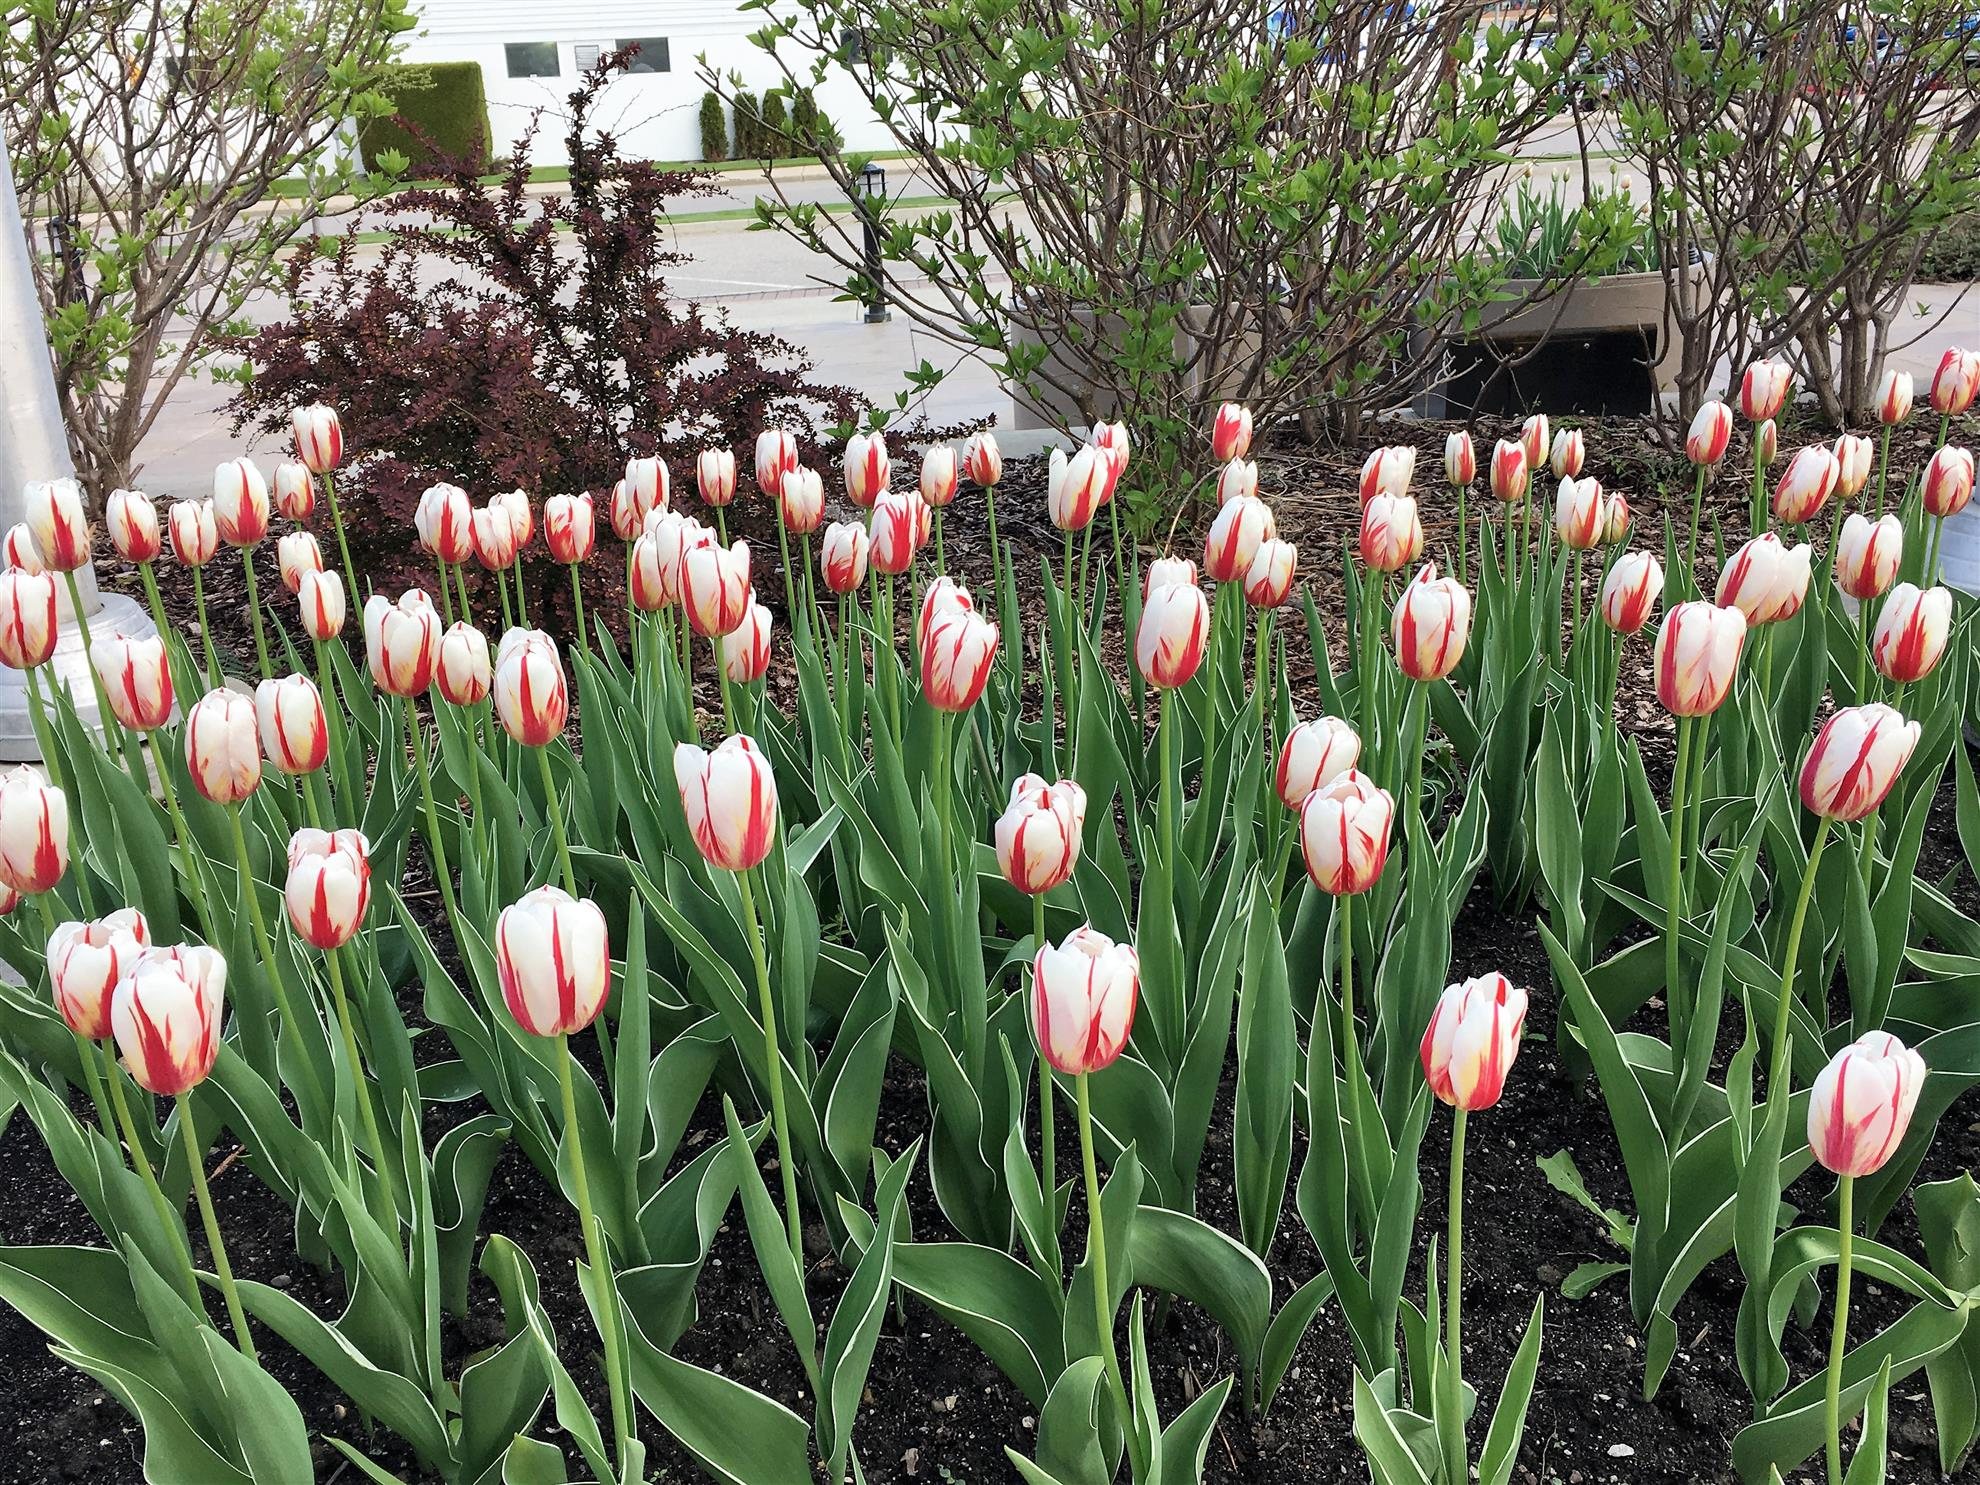 Canada 150 Tulips at City Hall